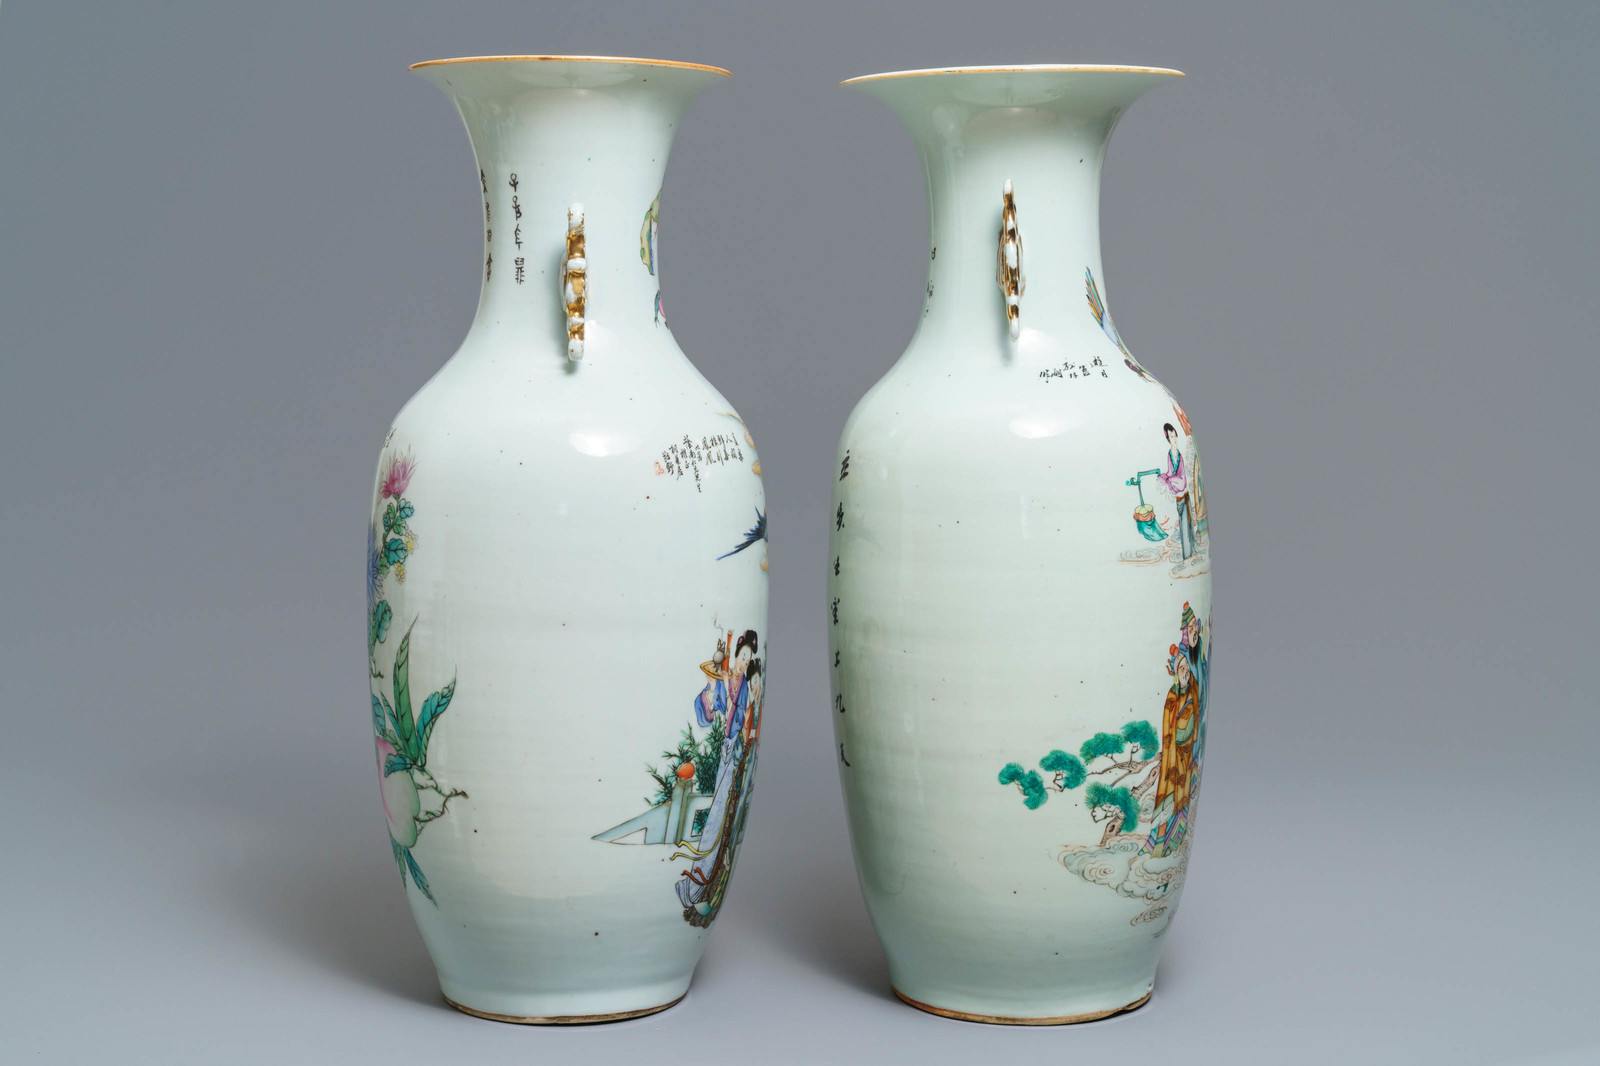 Lot 16 - Two Chinese famille rose vases with figural design, 19/20th C.